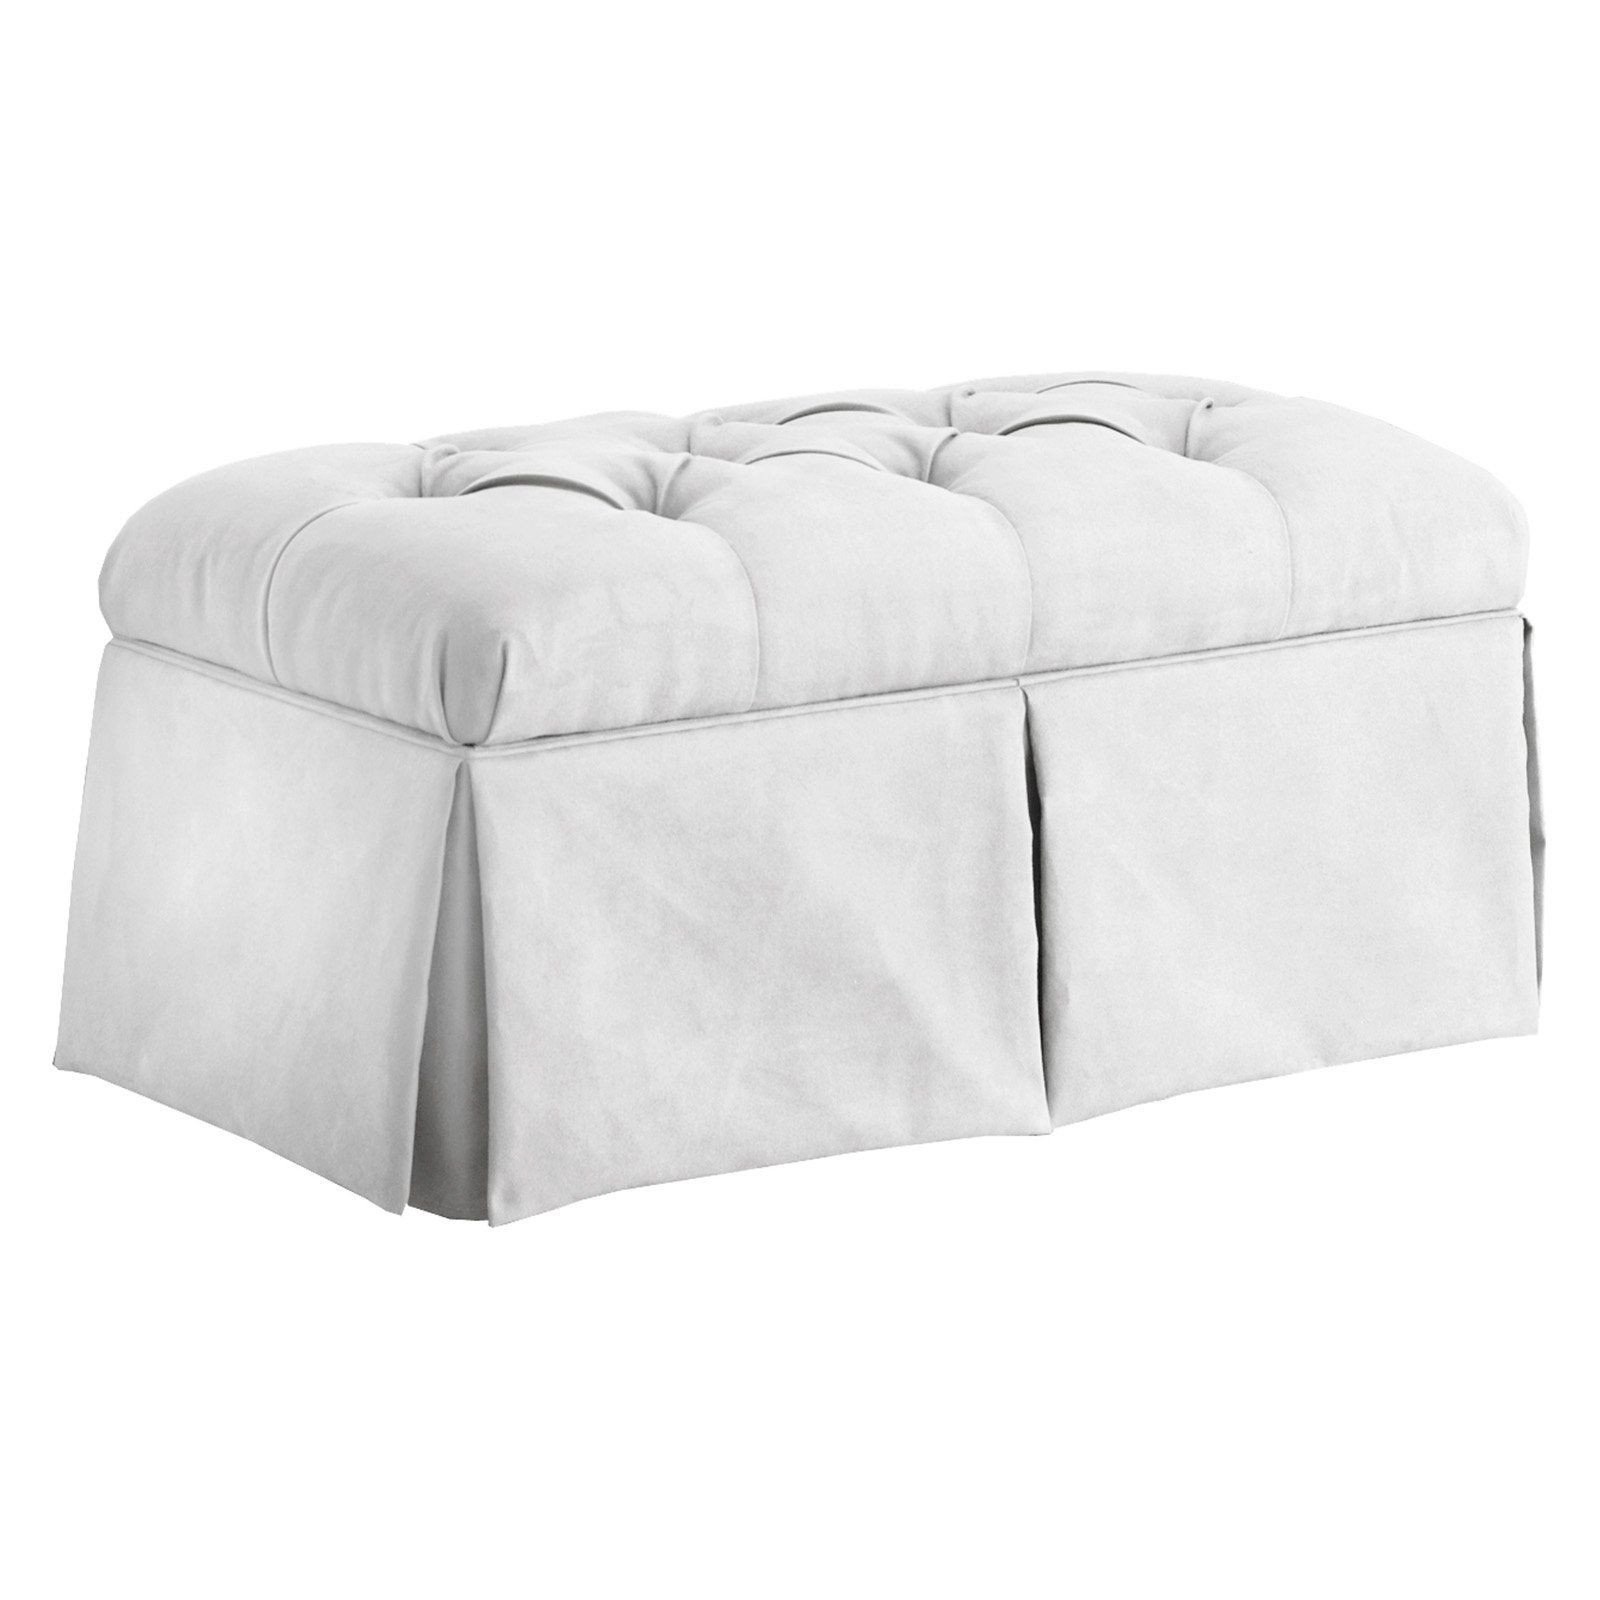 Bedroom Bench with Back Lovely Skyline Velvet Skirted Storage Bench White